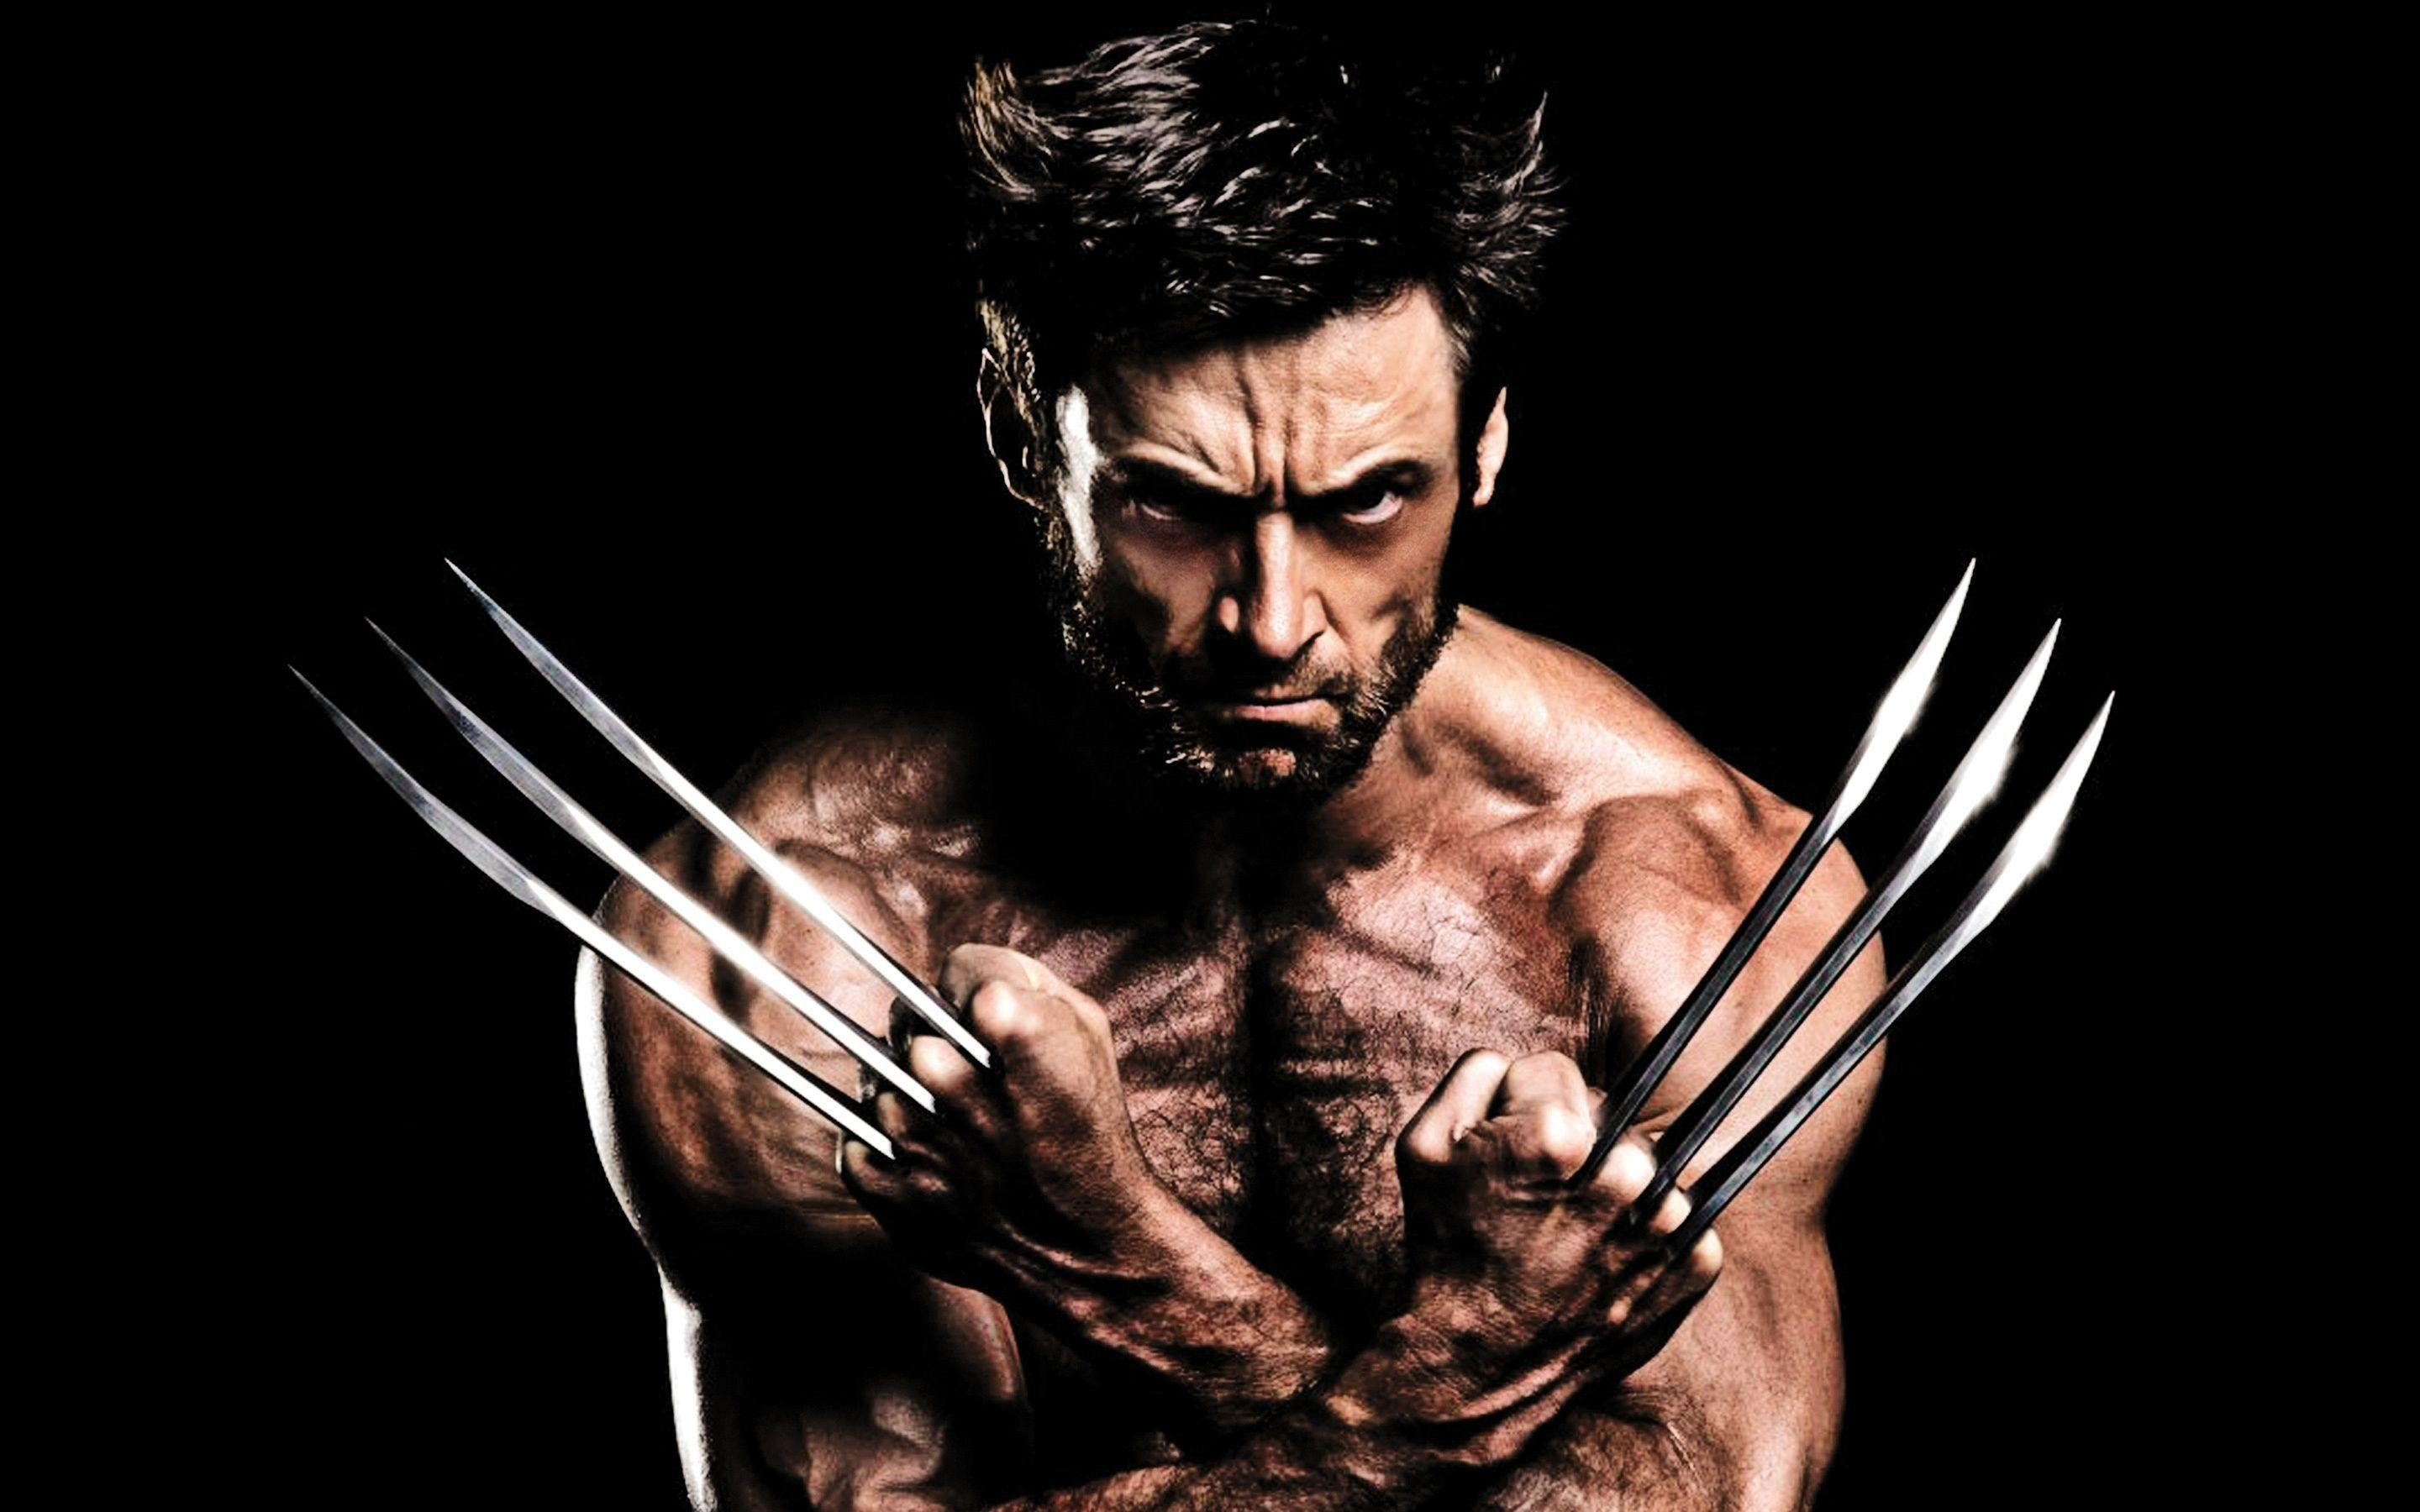 Wallpapers Tagged With WOLVERINE